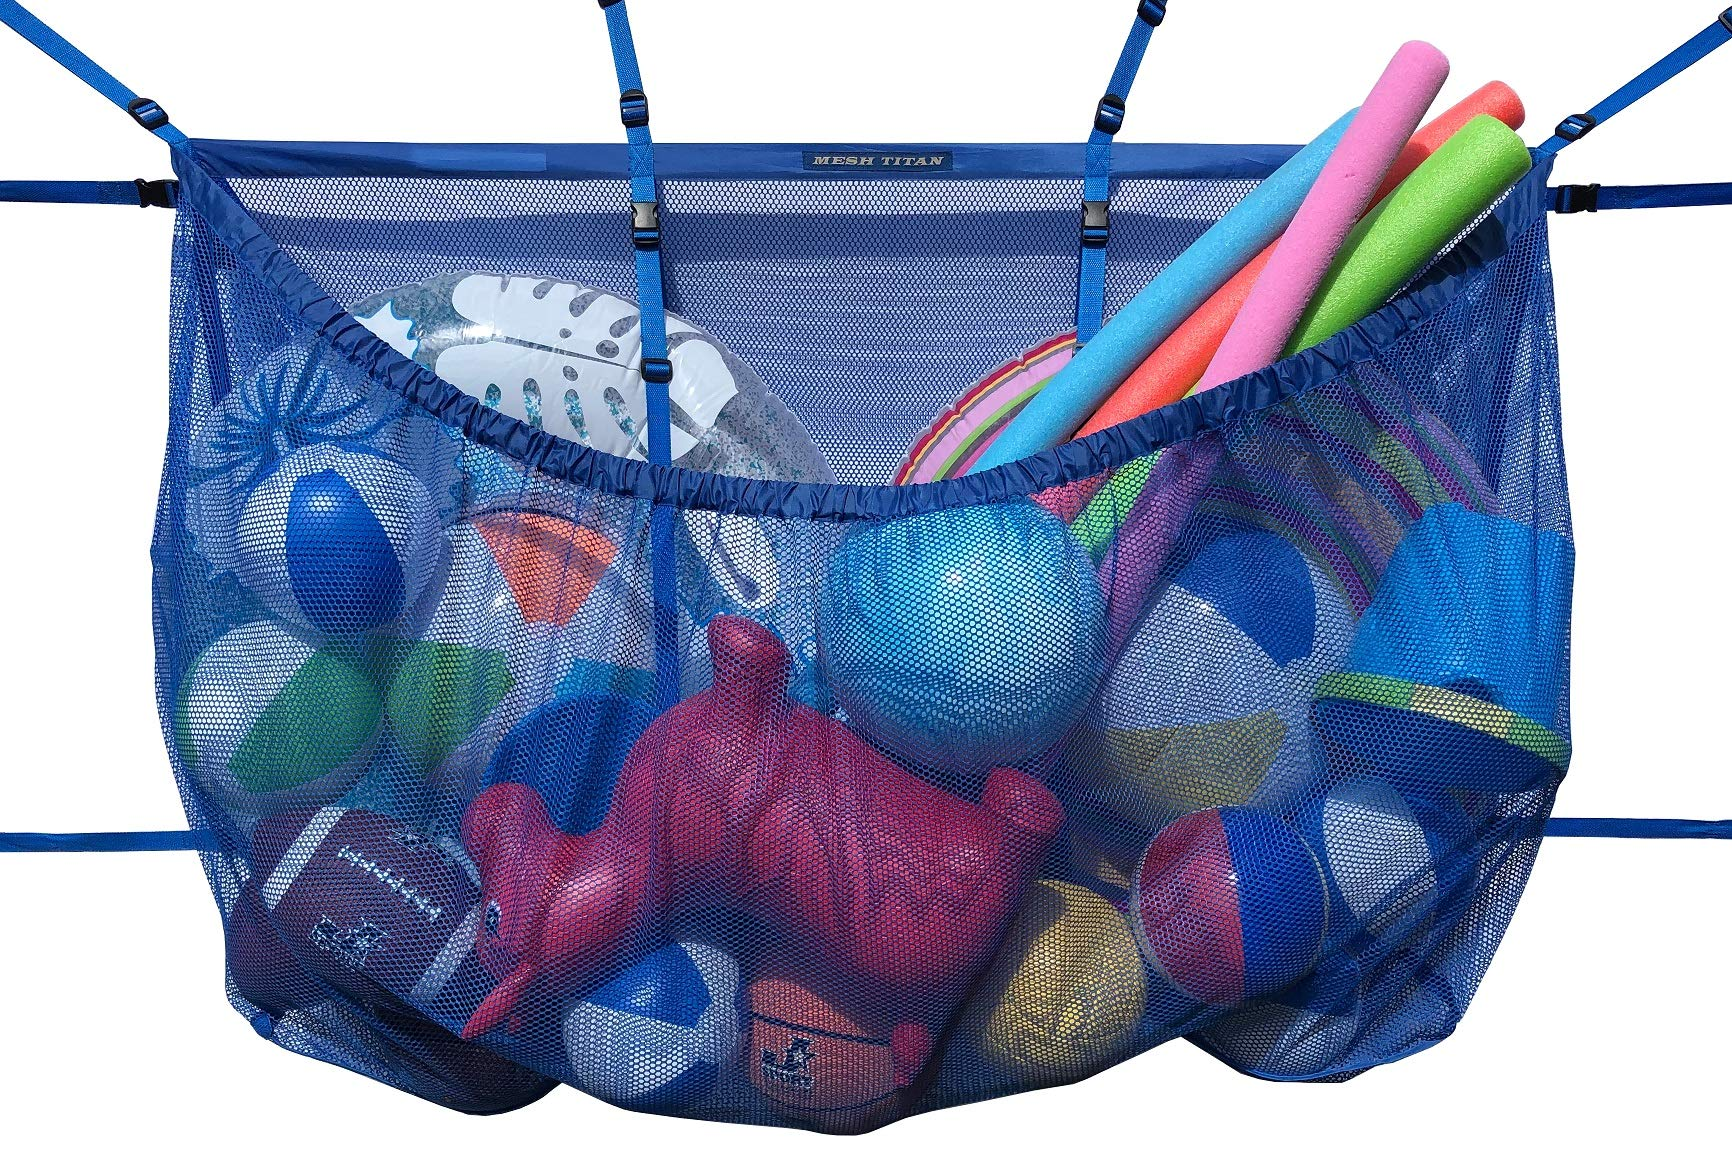 MESH TITAN Hanging Storage Bag, Blue - Adjustable, Versatile Organizer Bag for Pool, Fence, Deck, Garage, Gym - 60'' Pouch Floats, Sports Balls, Inflatable rafts, Toys, Yoga More by MESH TITAN